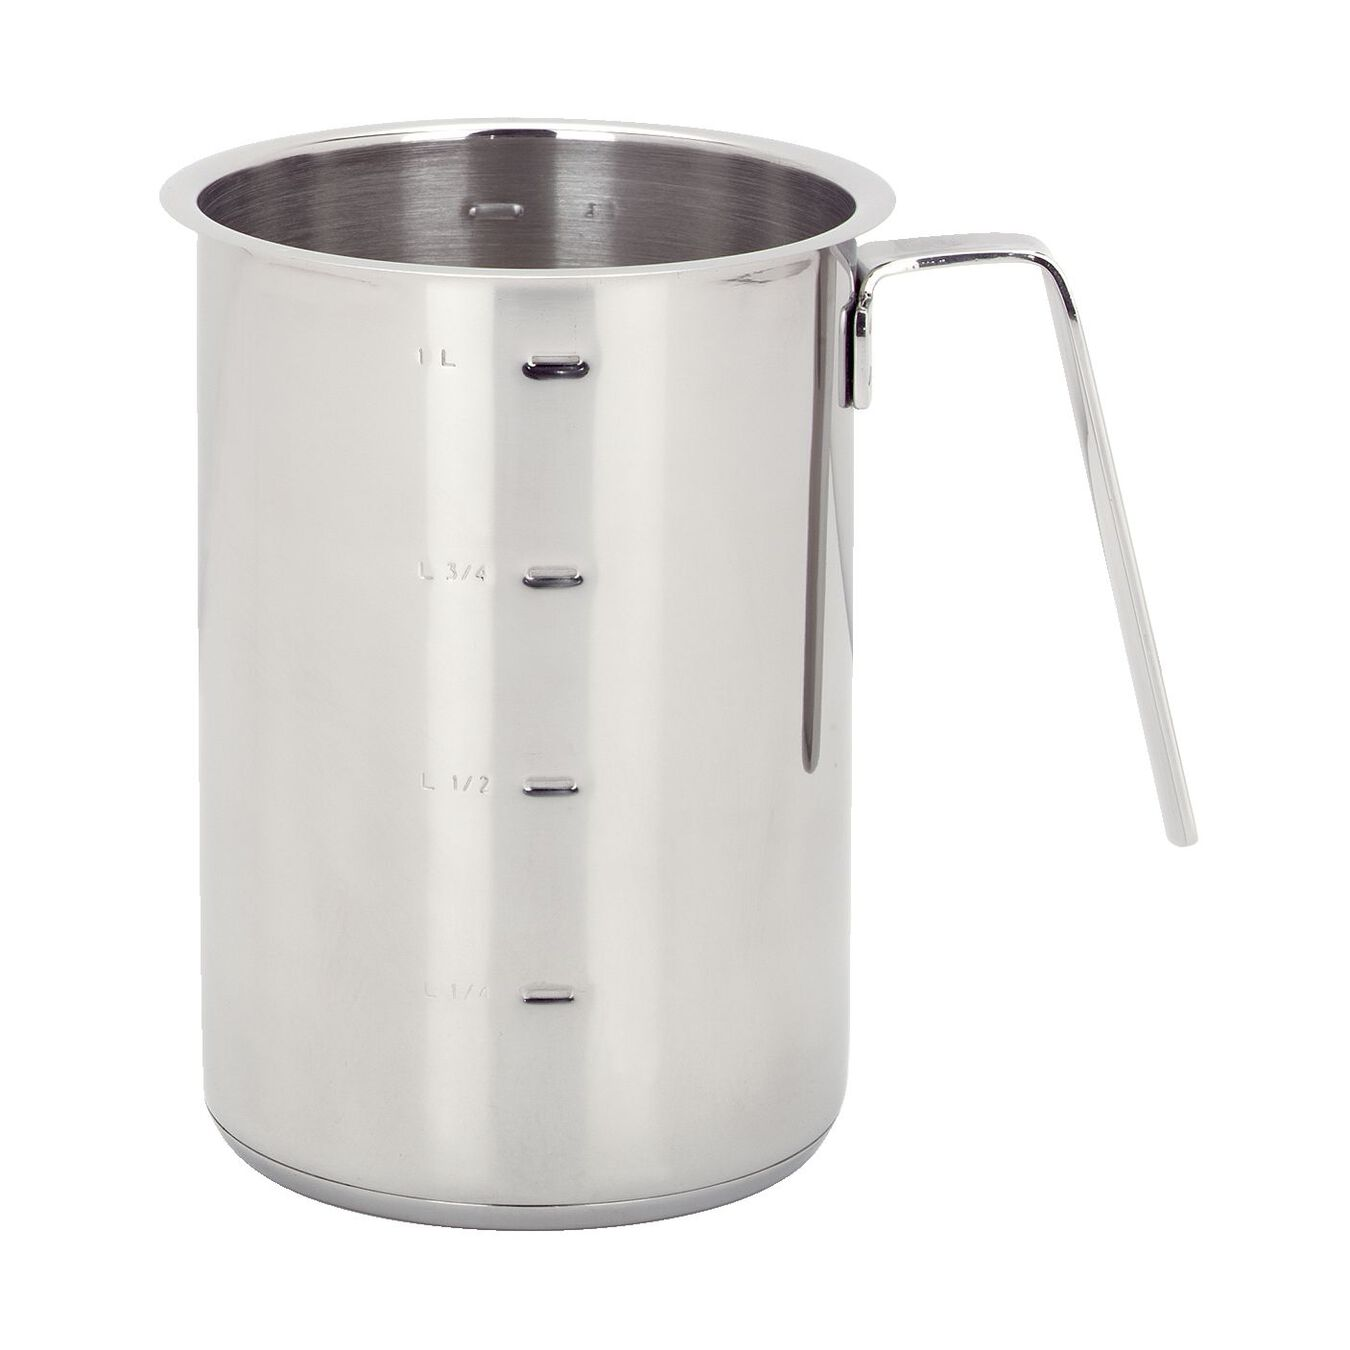 1.25 qt Bain Marie pot, 18/10 Stainless Steel ,,large 1